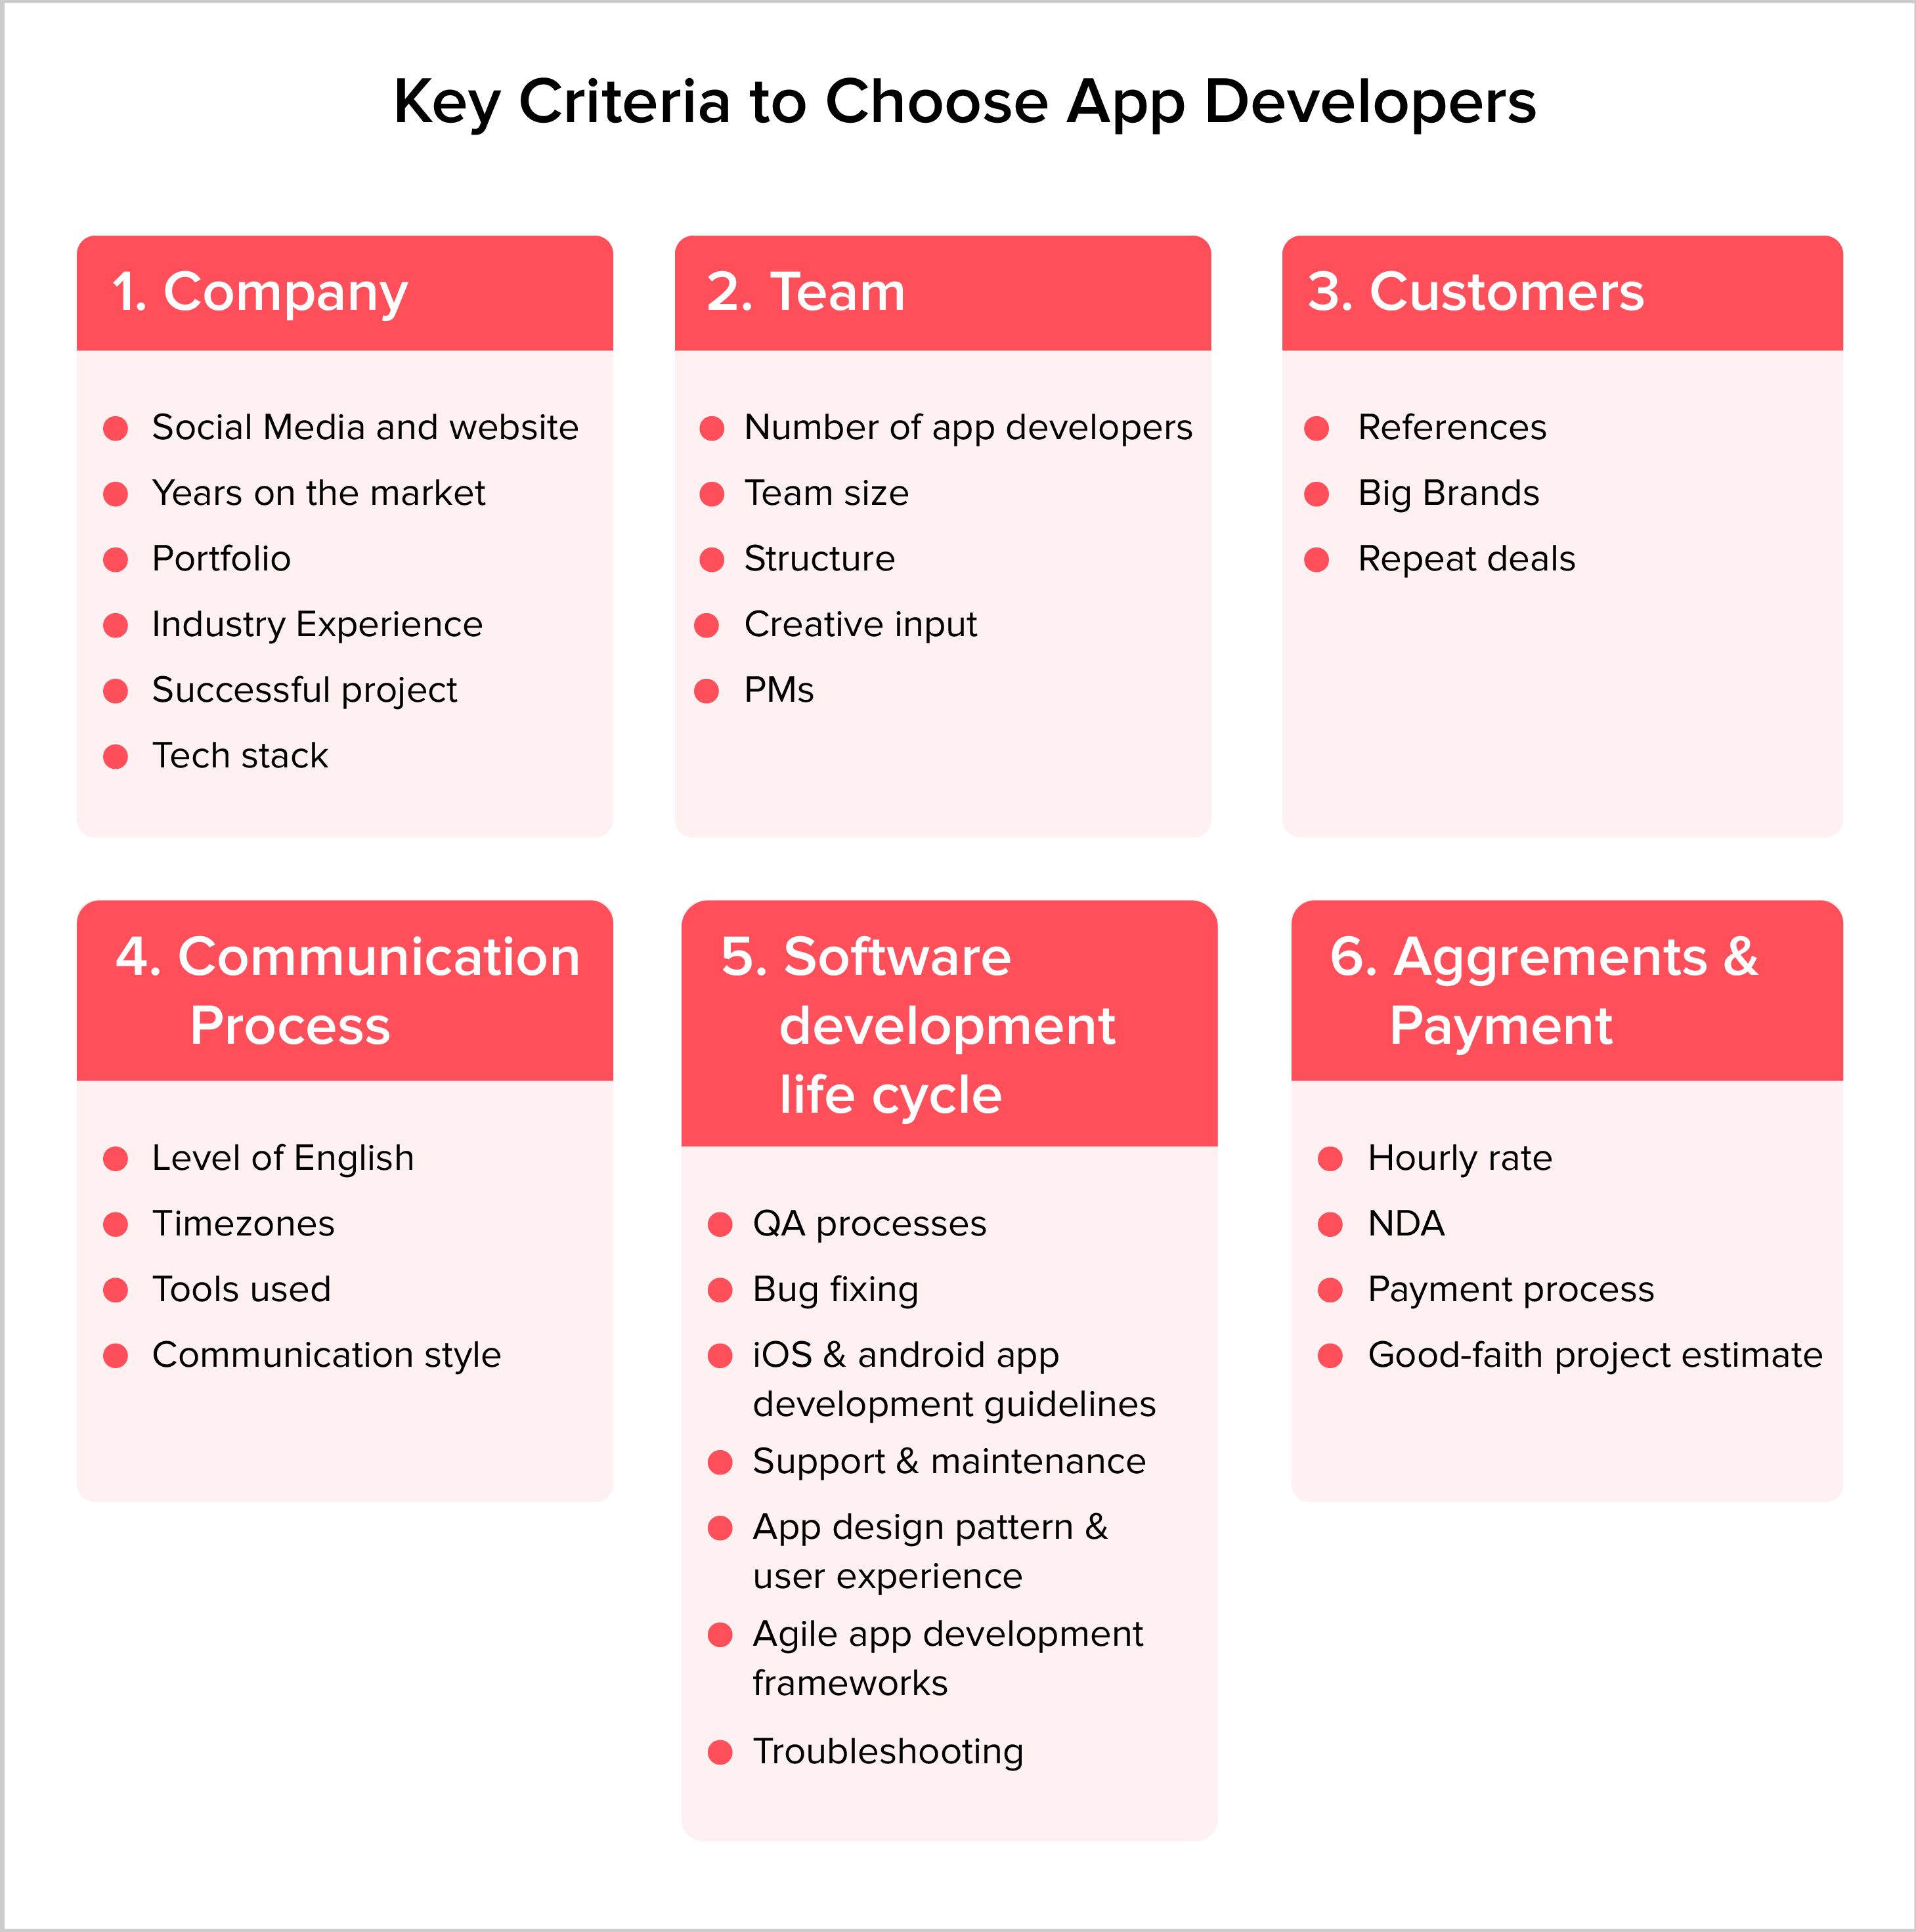 Key criteria to choose app developers